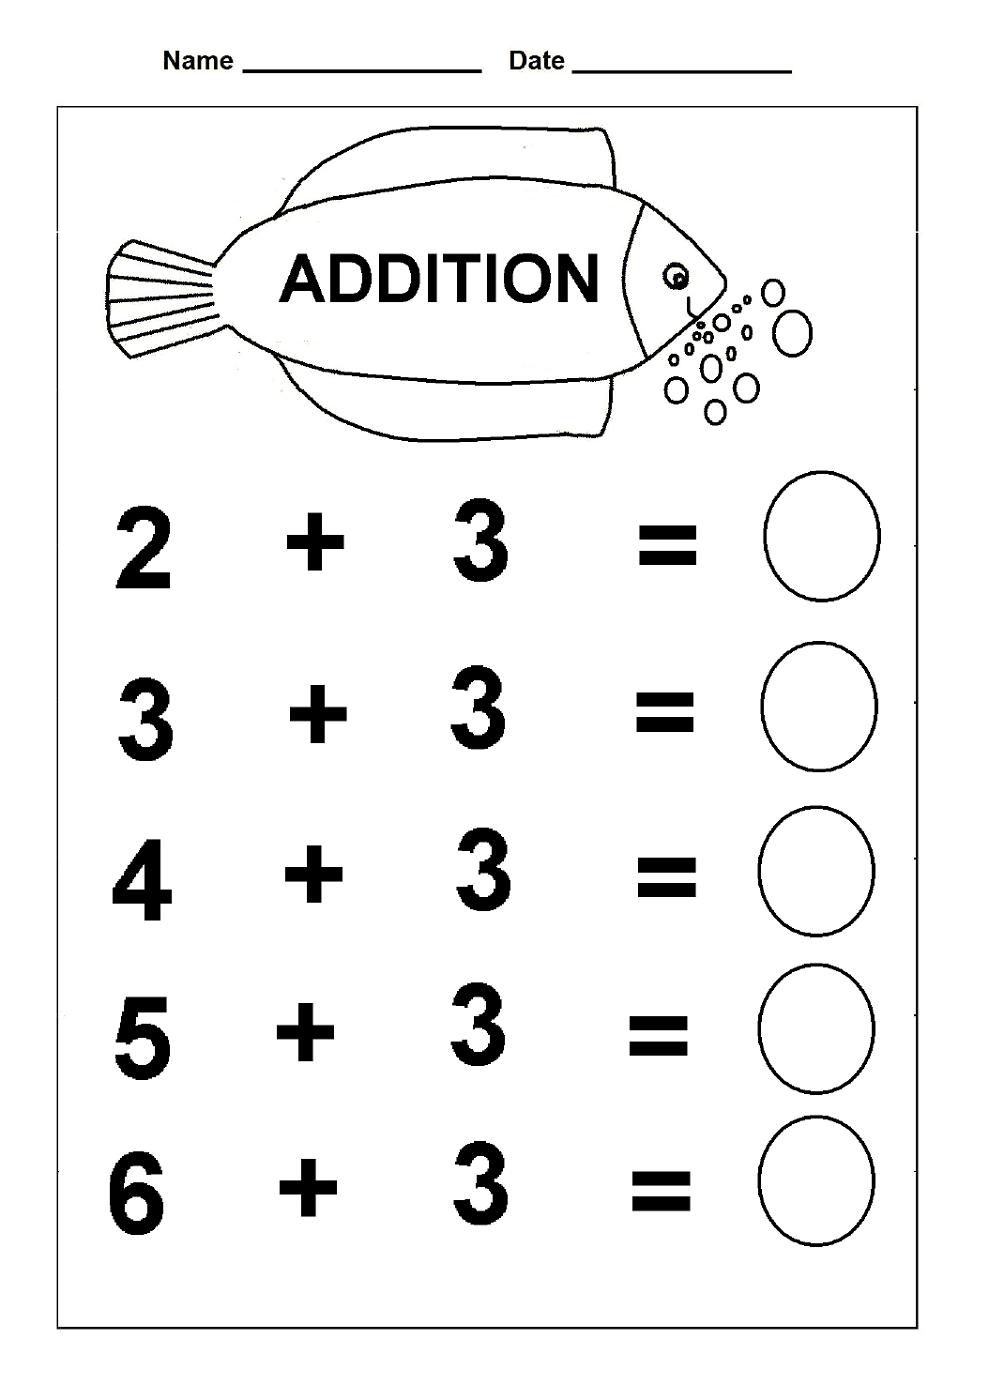 math fun worksheet addition - Kids Activity Worksheet